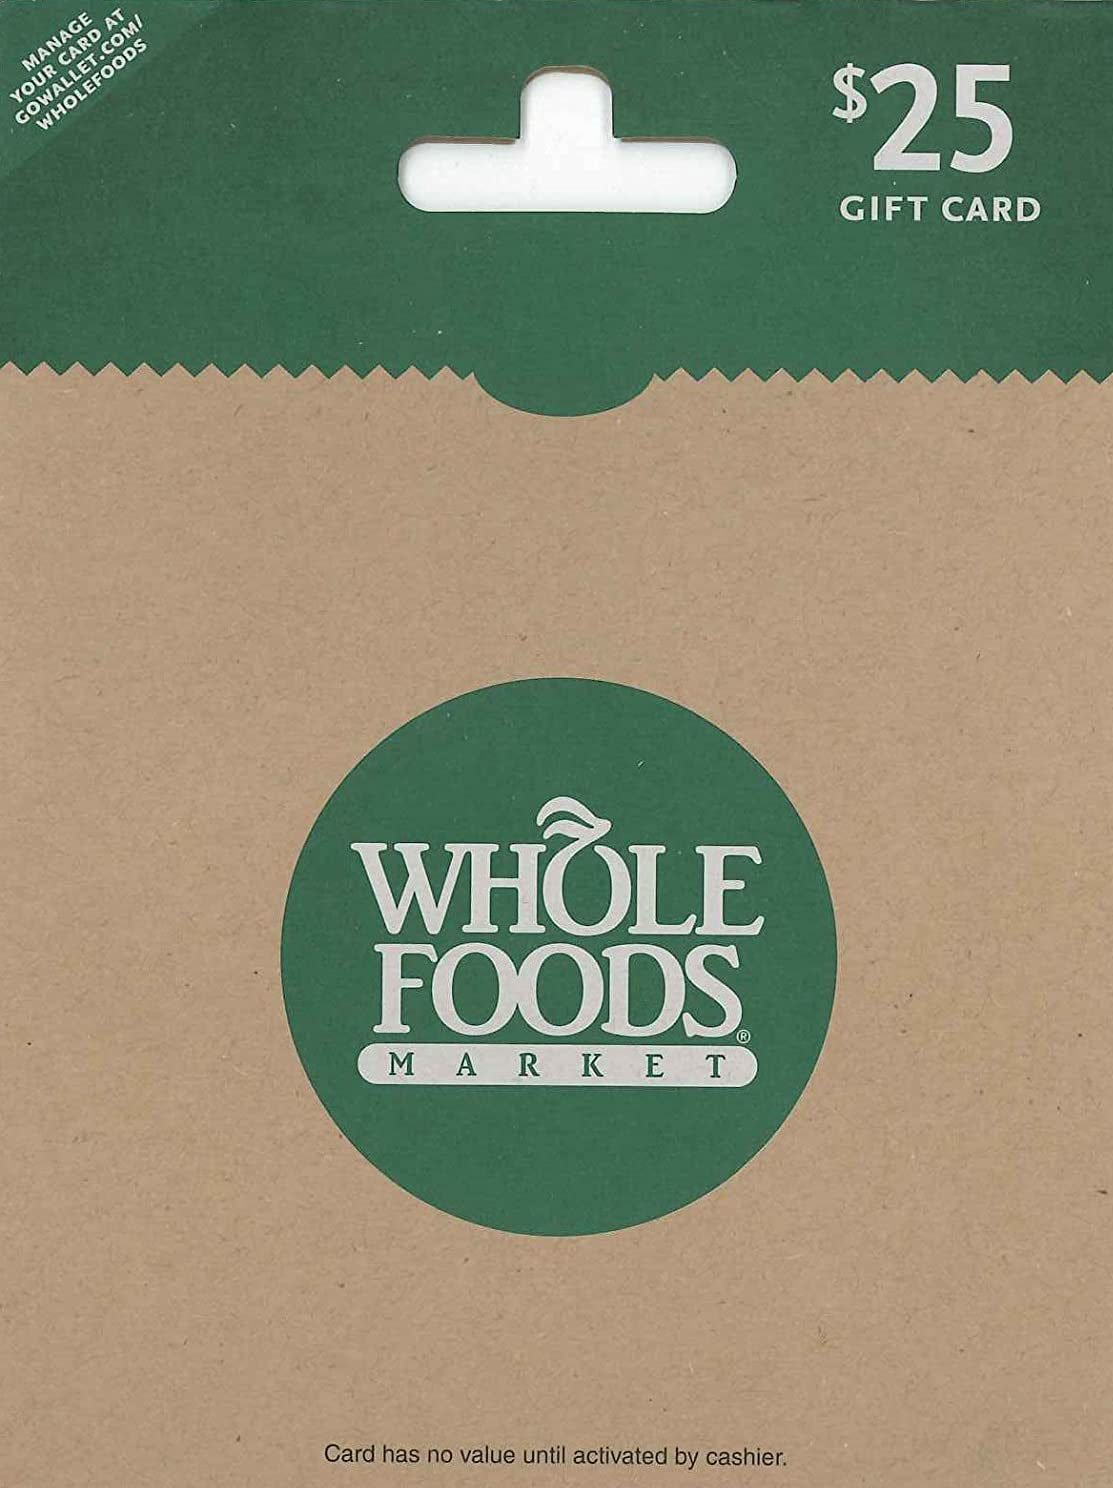 Whole Foods e-gift card